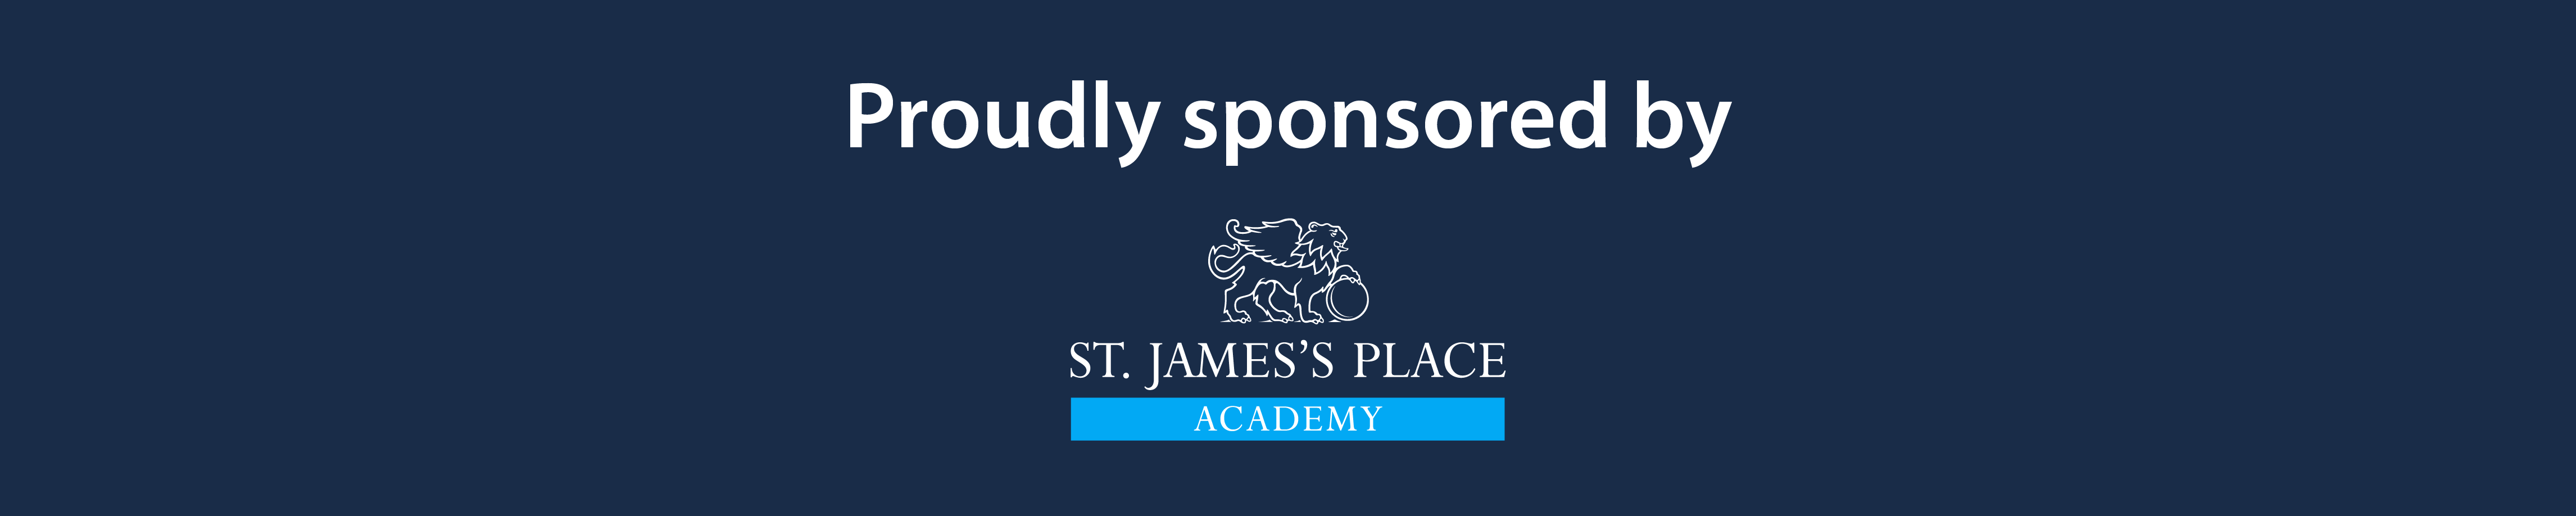 Proudly sponsored by St James's Place Academy